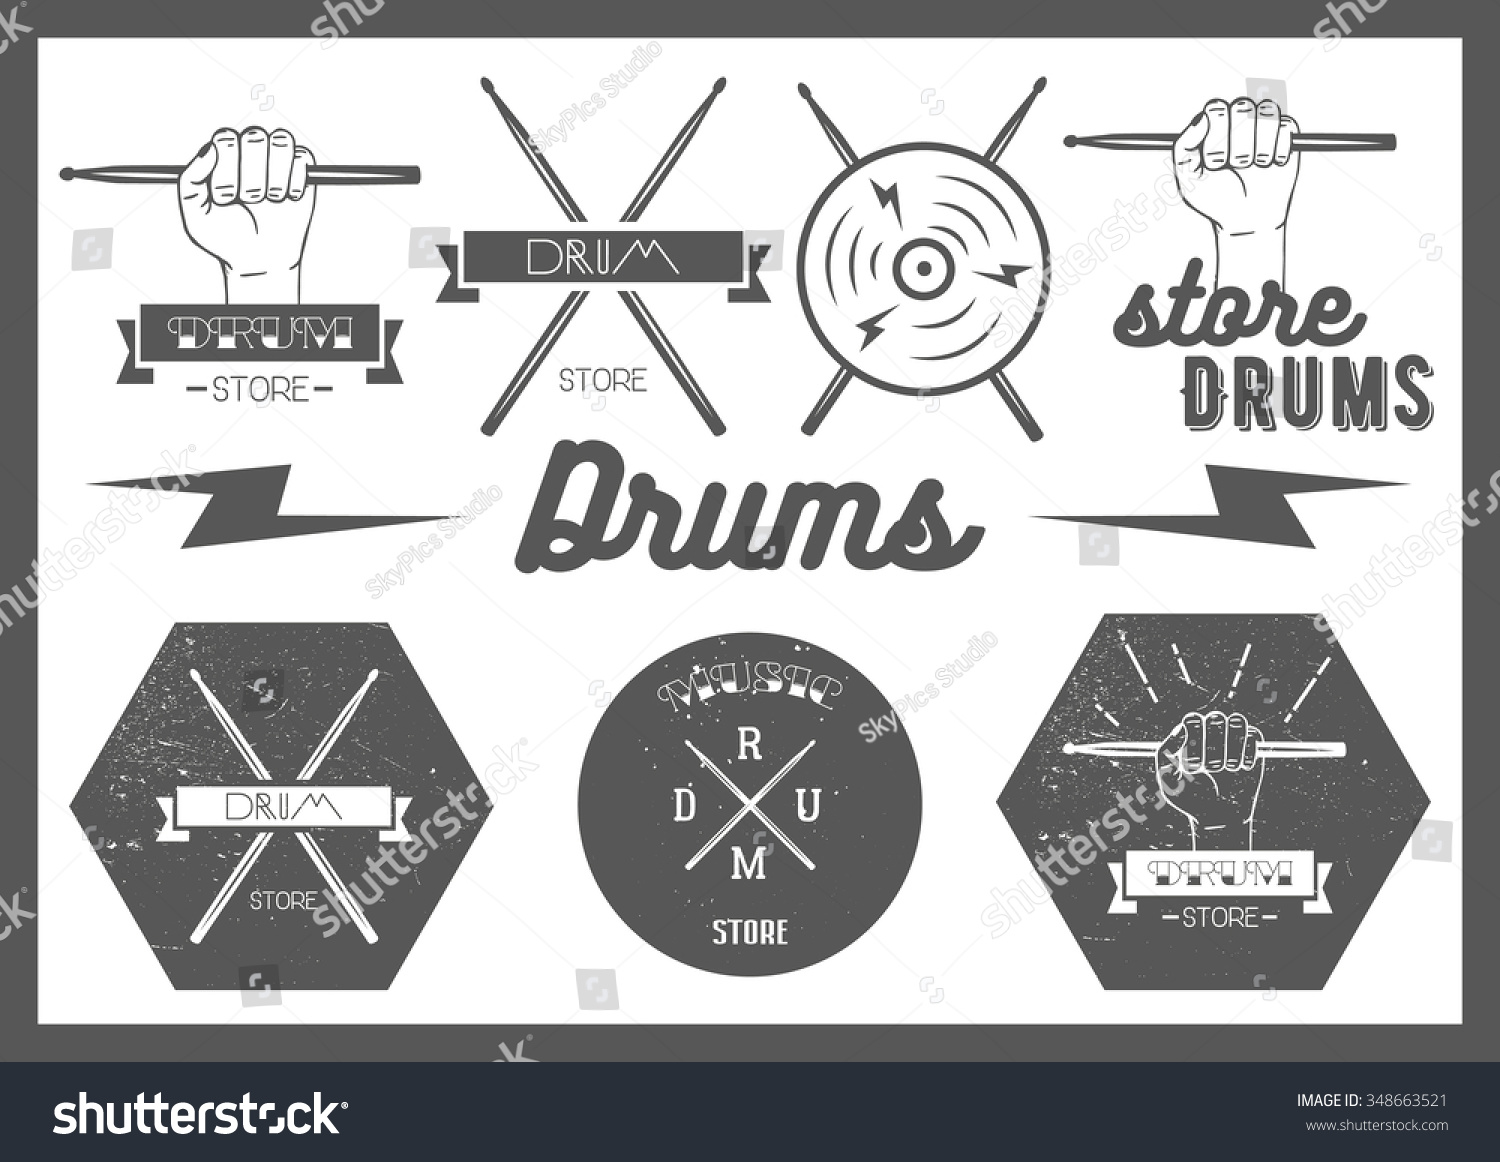 Text Rock Music Monochrome Music Bands 2652x2284 Wallpaper: Vector Set Vintage Style Drums Labels Stock Vector